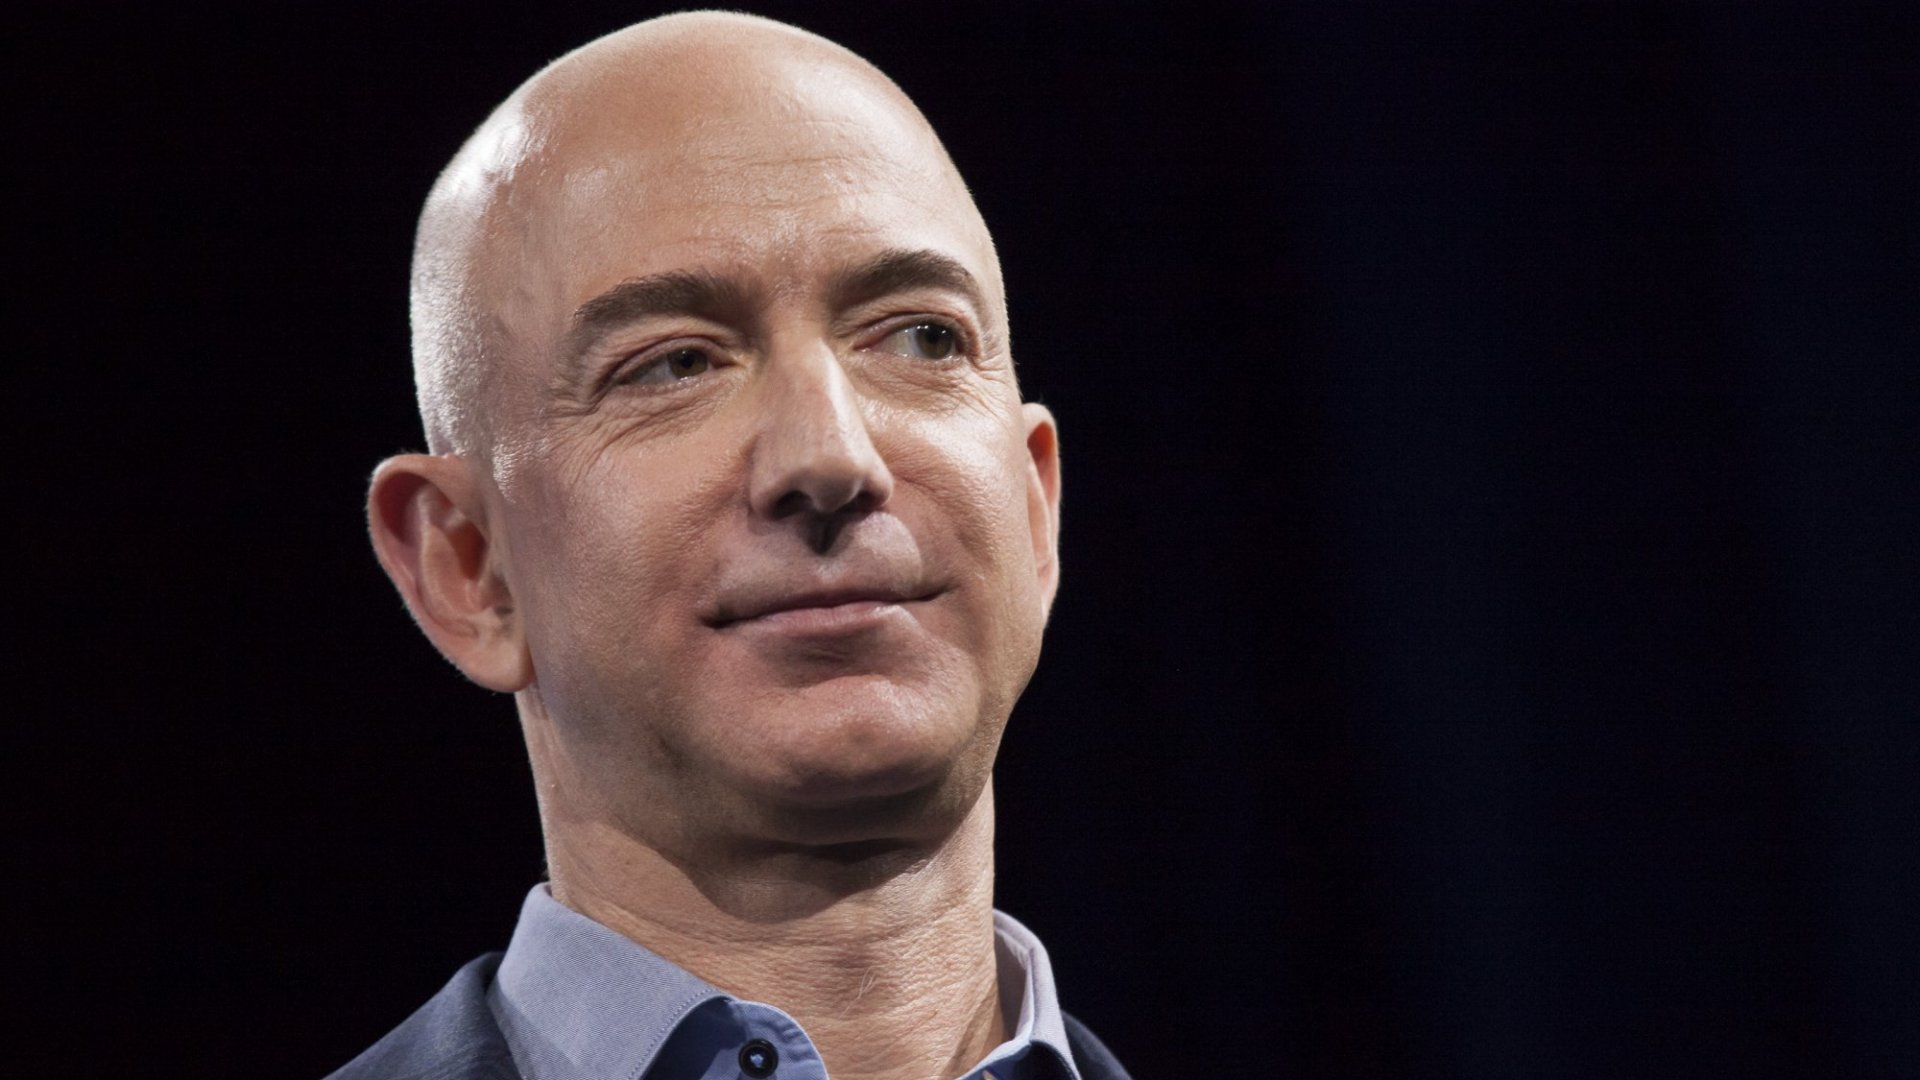 Breaking Down Jeff Bezos's Leadership Style: Here Are 8 of the Most Compelling Lessons